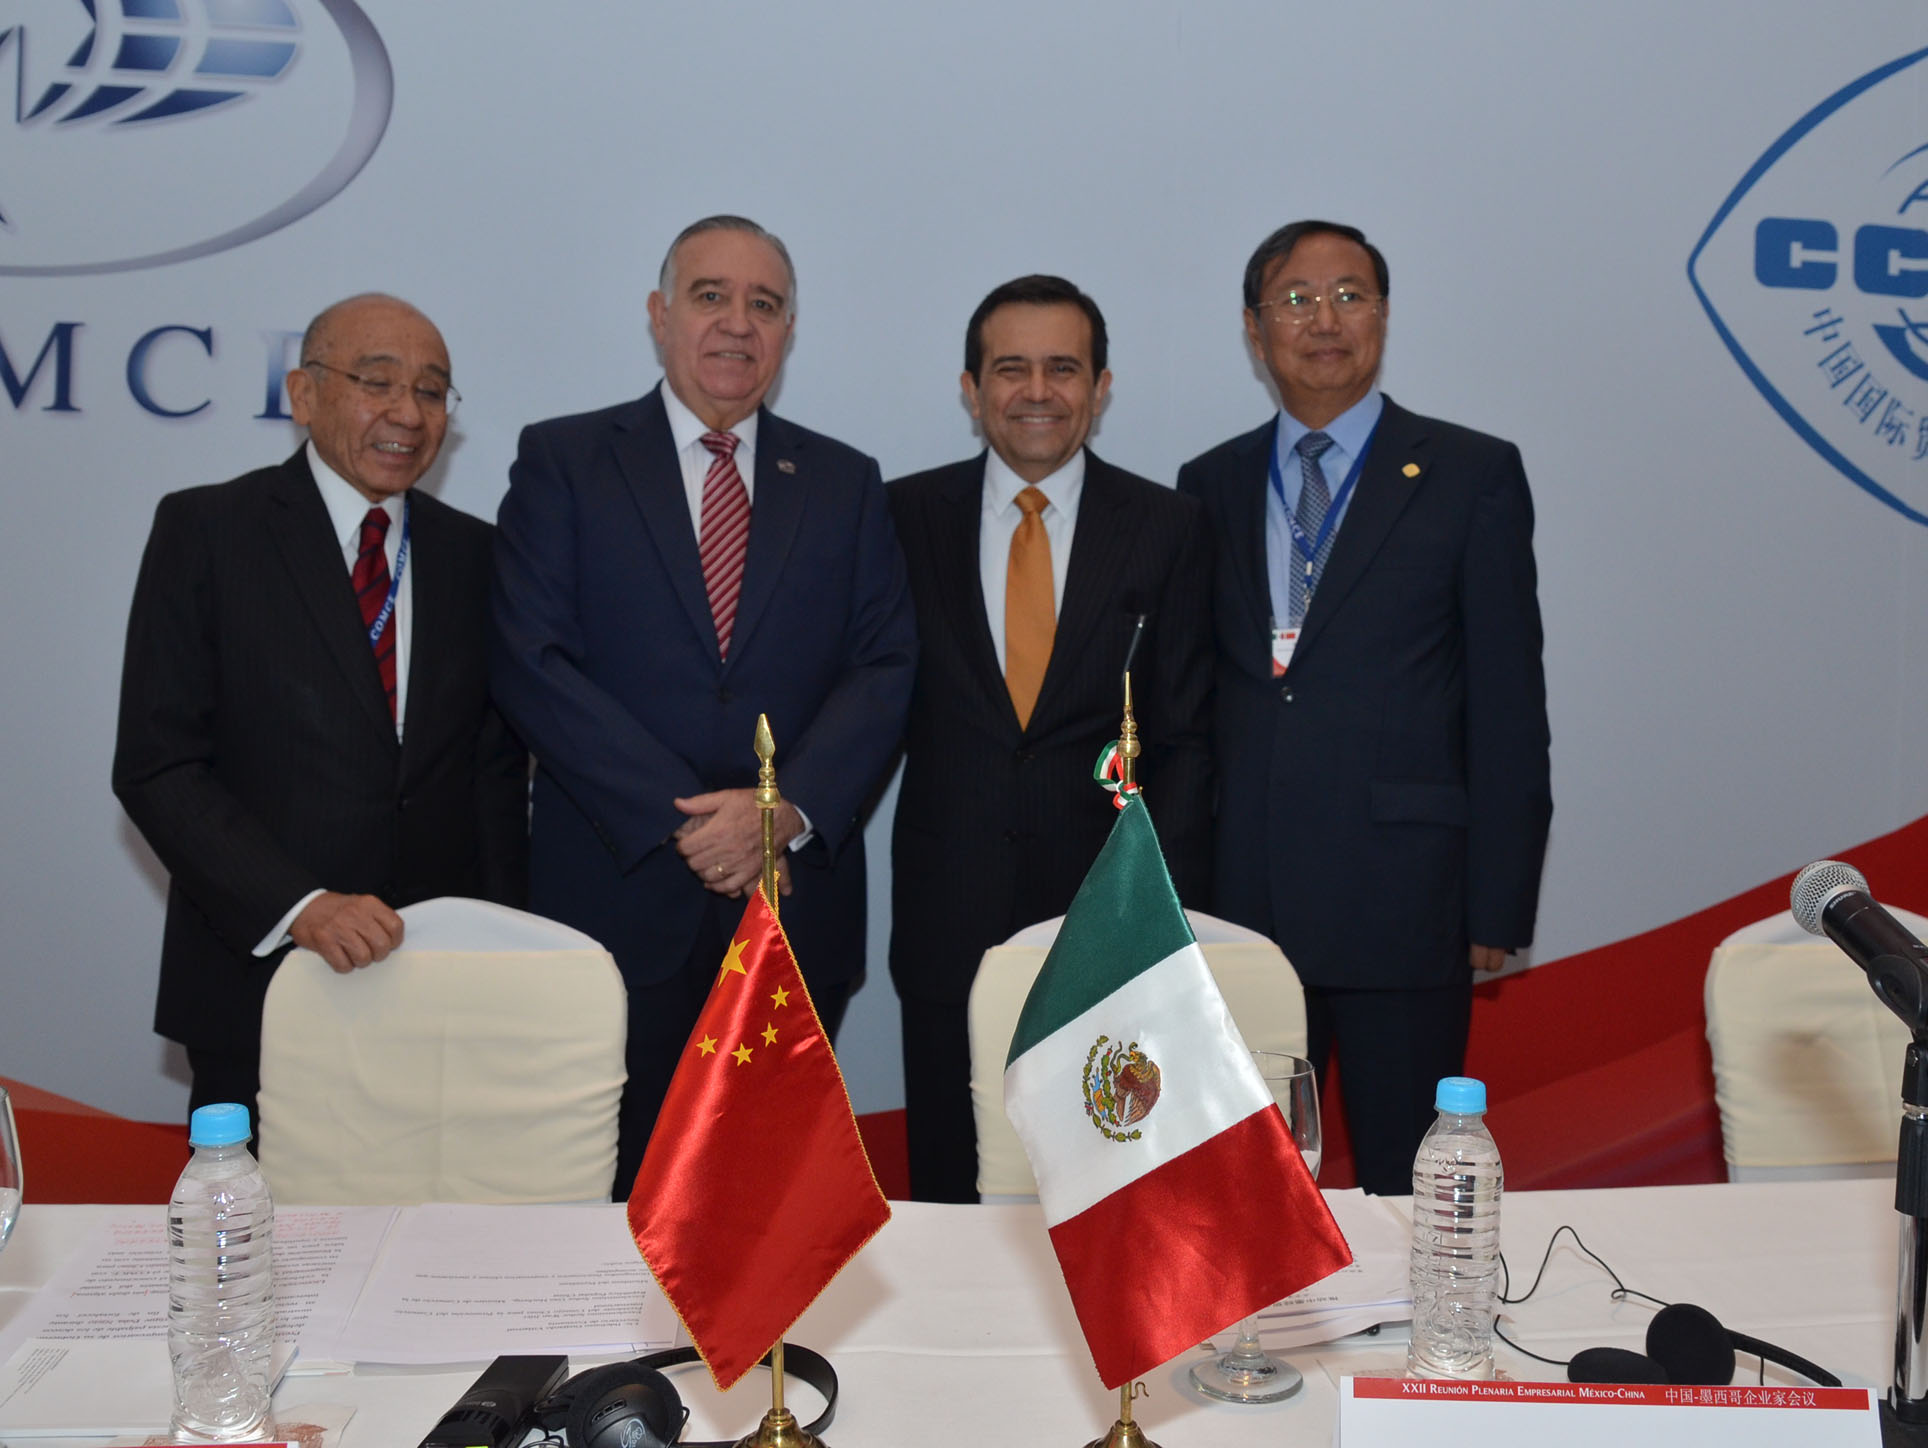 95a xxii reunion plenaria empresarial mex. china 1